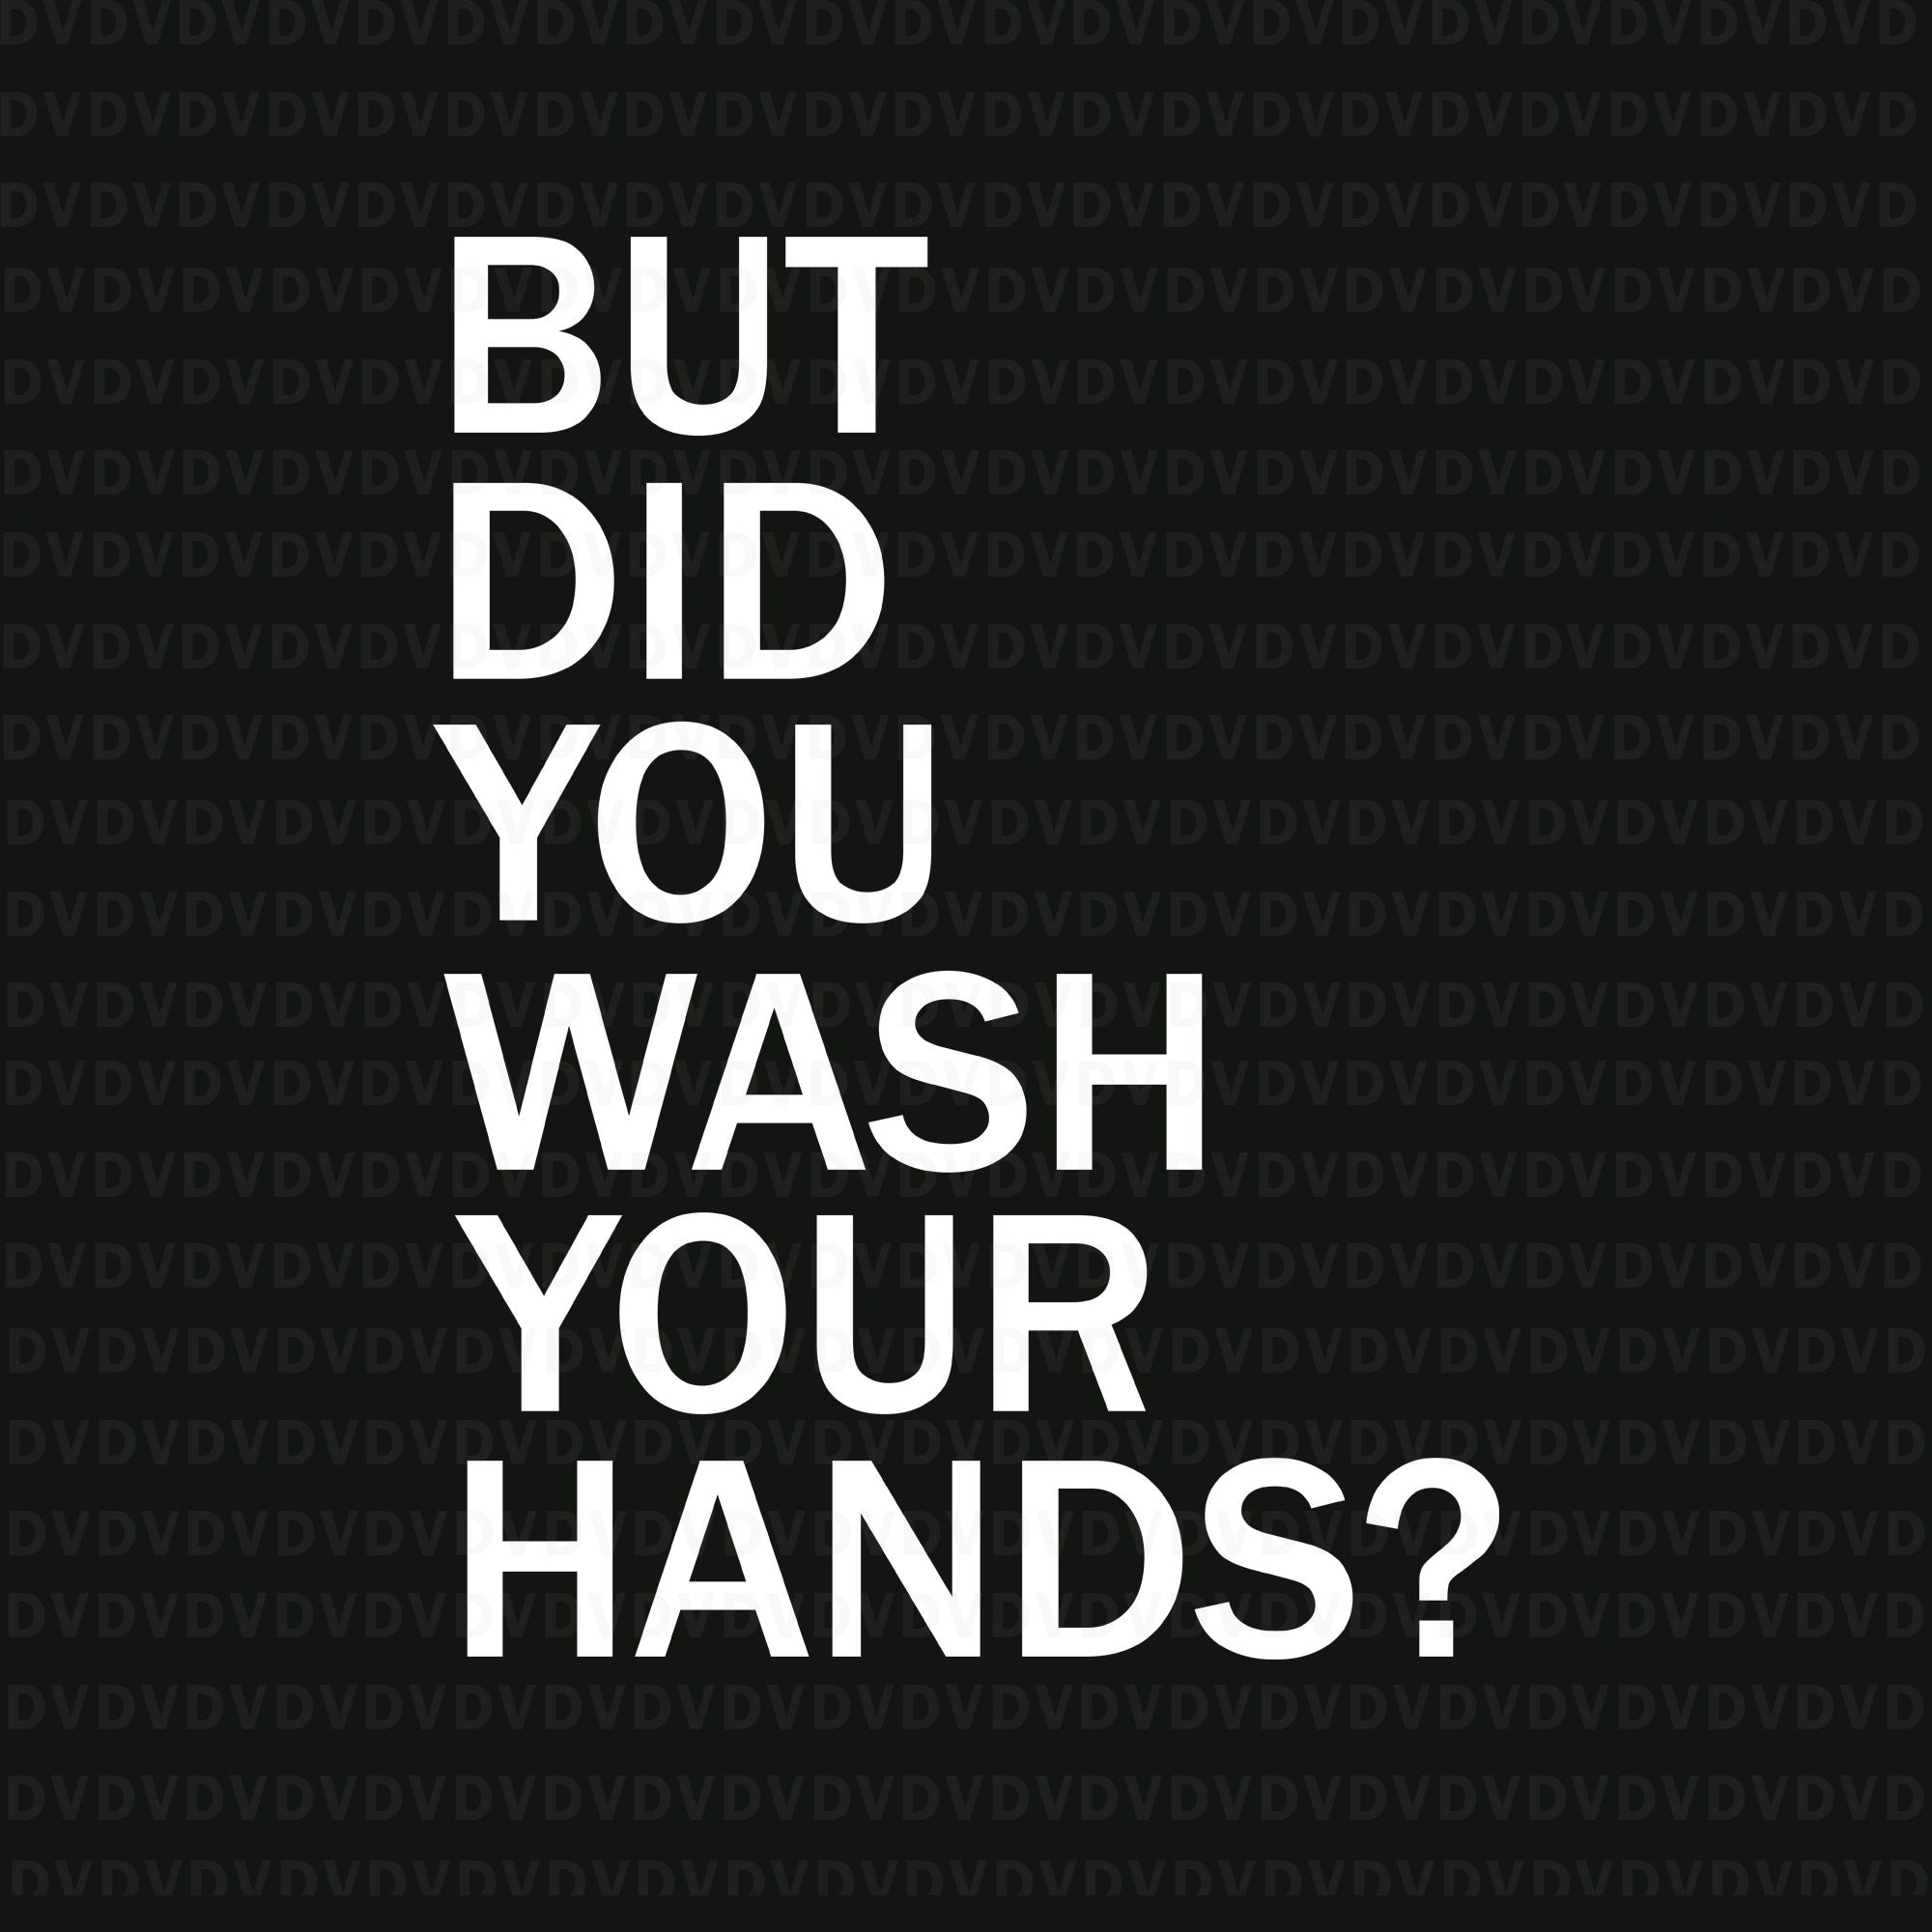 But did you wash your hands hand washing hygiene svg, but did you wash your hands hand